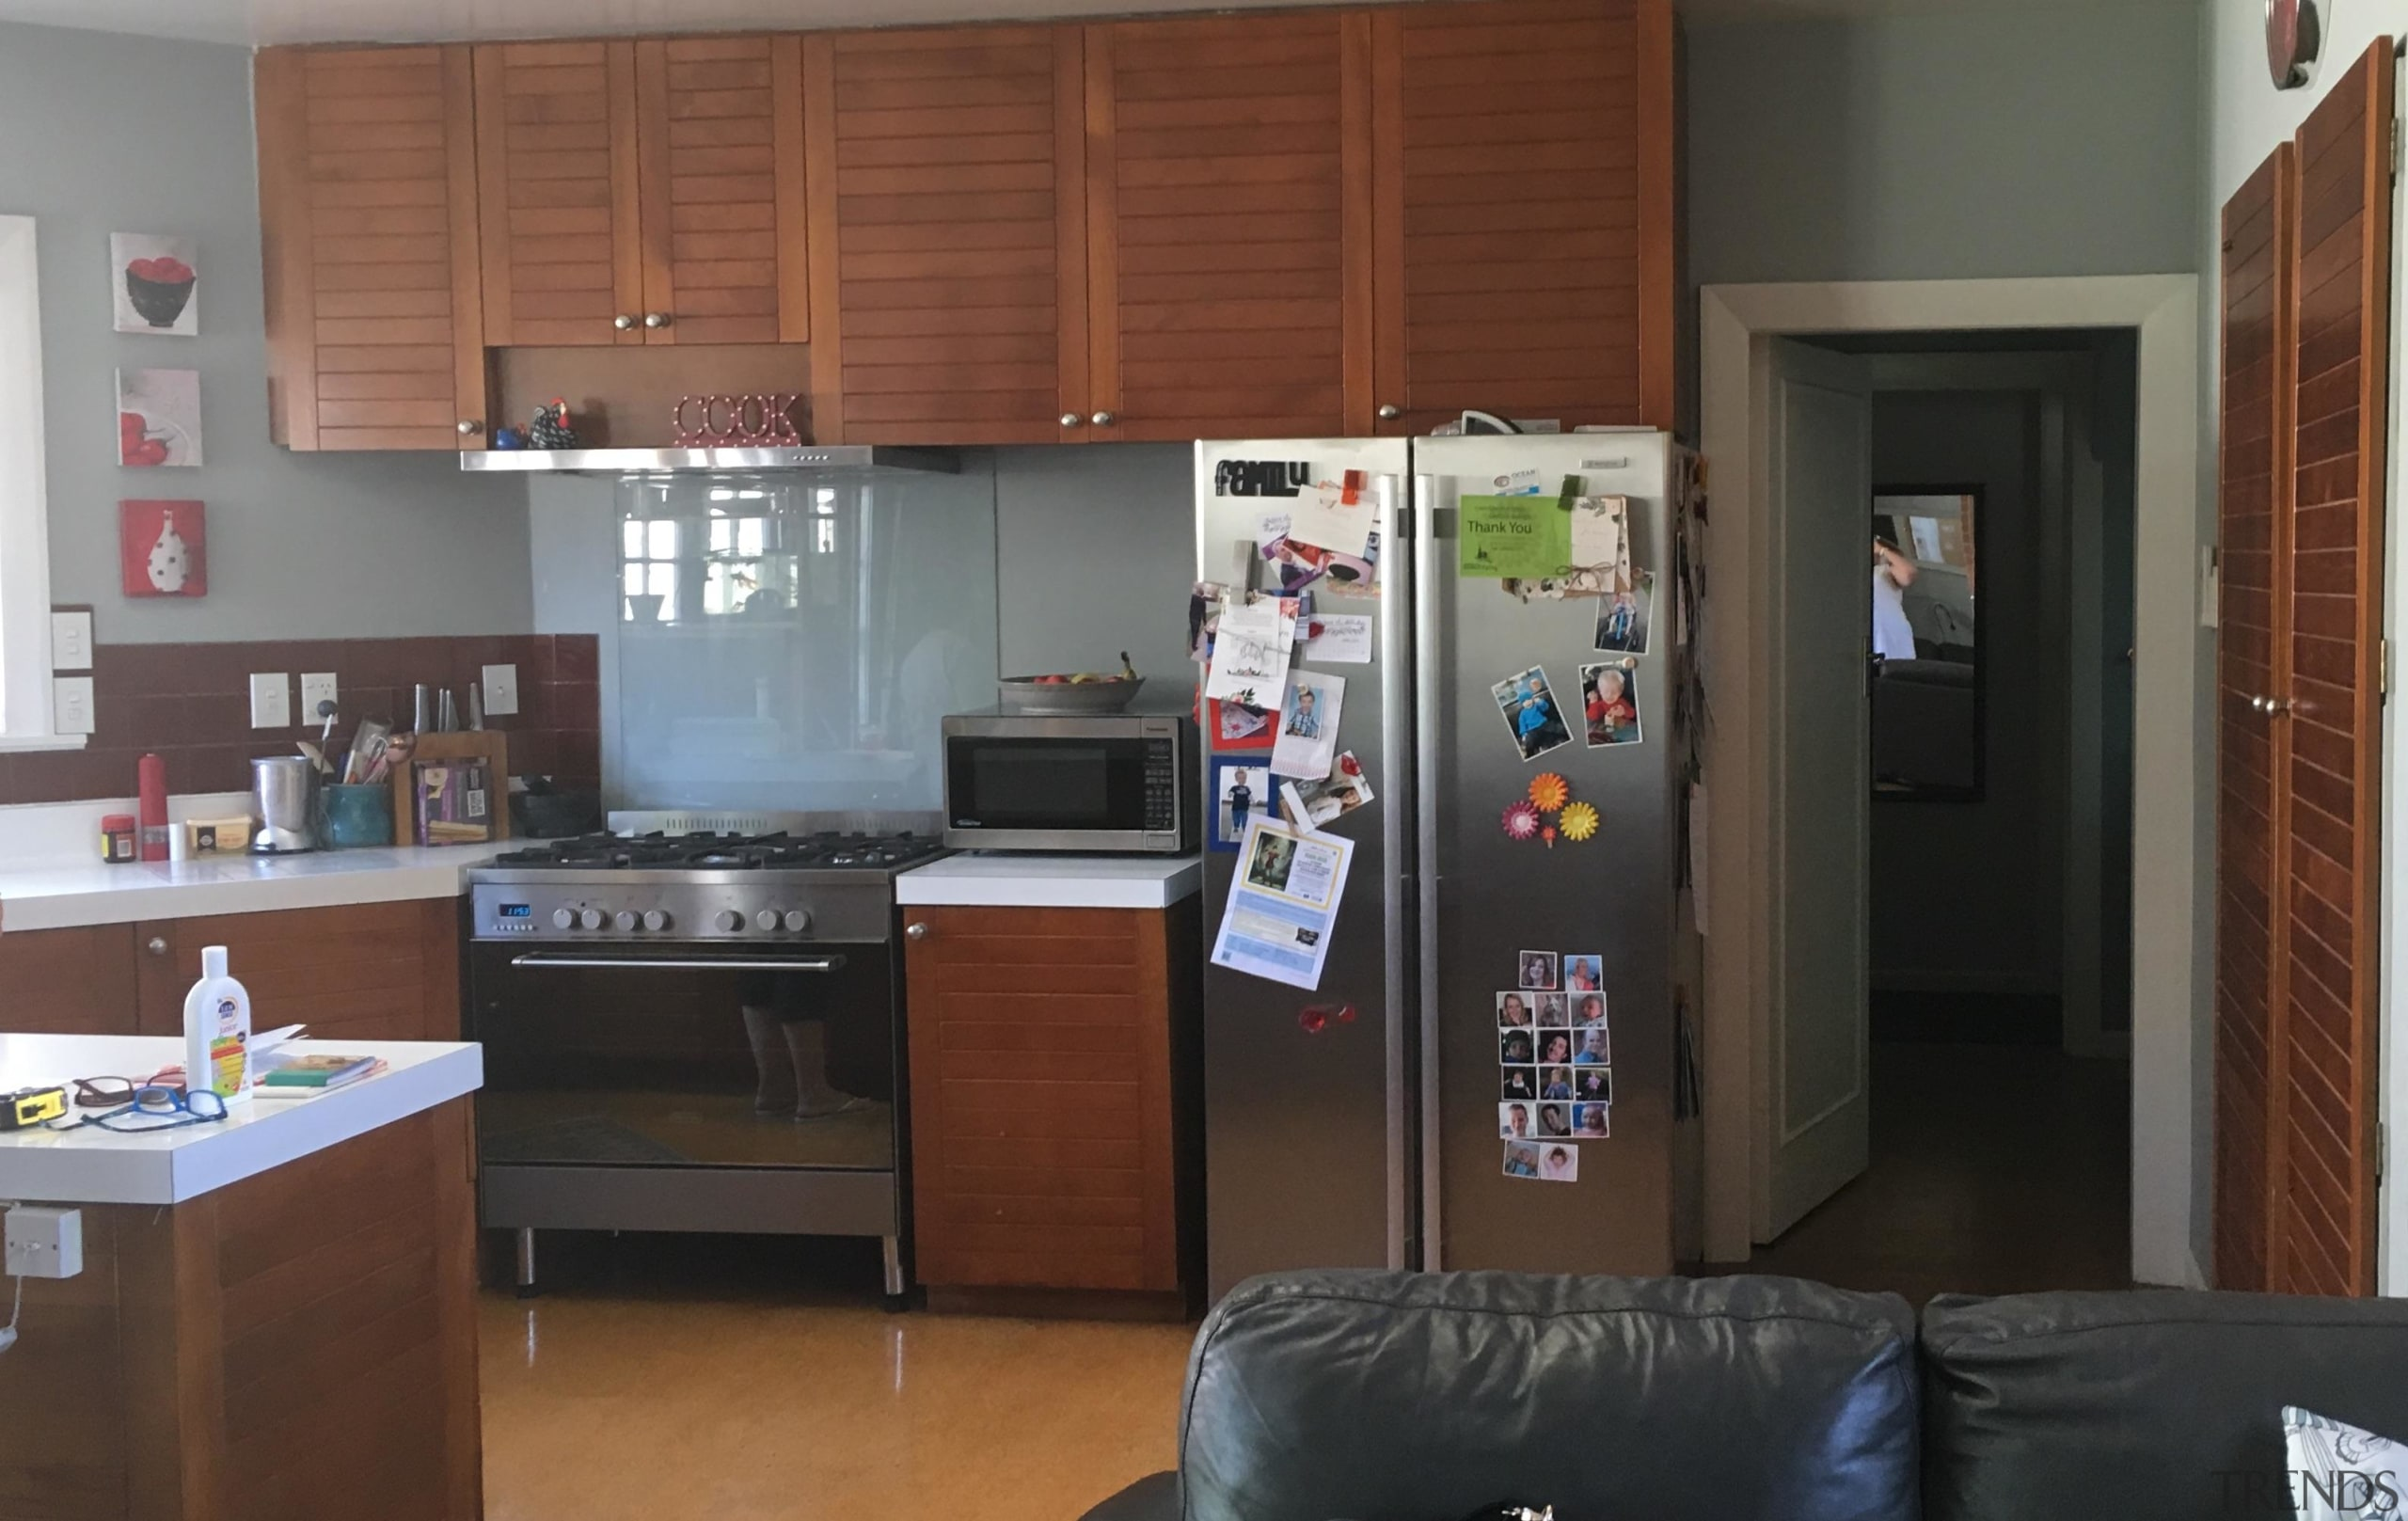 Before – an outdated extension had previously incorporated countertop, home appliance, kitchen, room, brown, gray, black